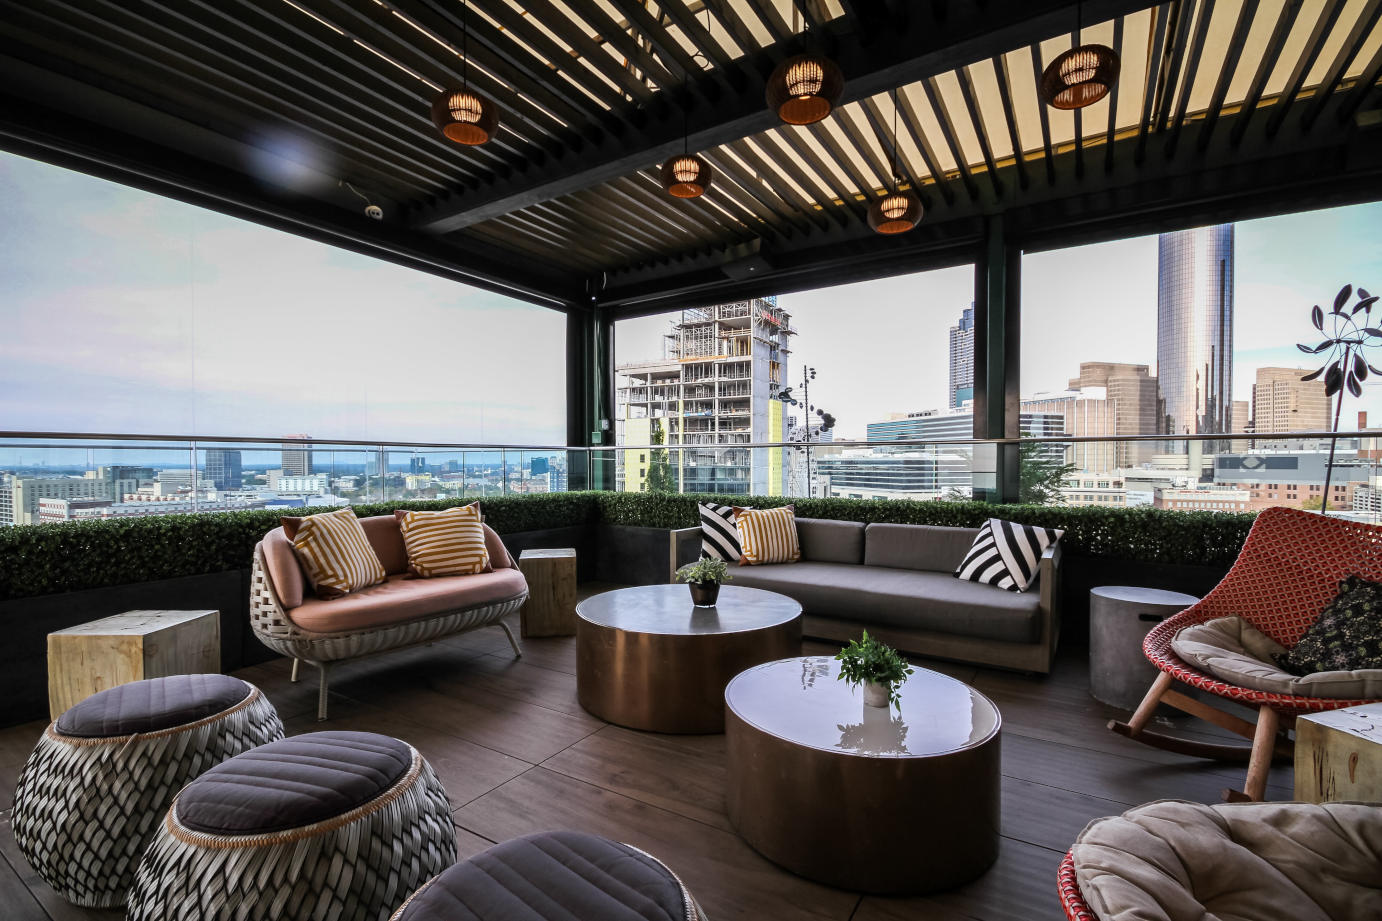 Outdoor patio, sitting corner with city view